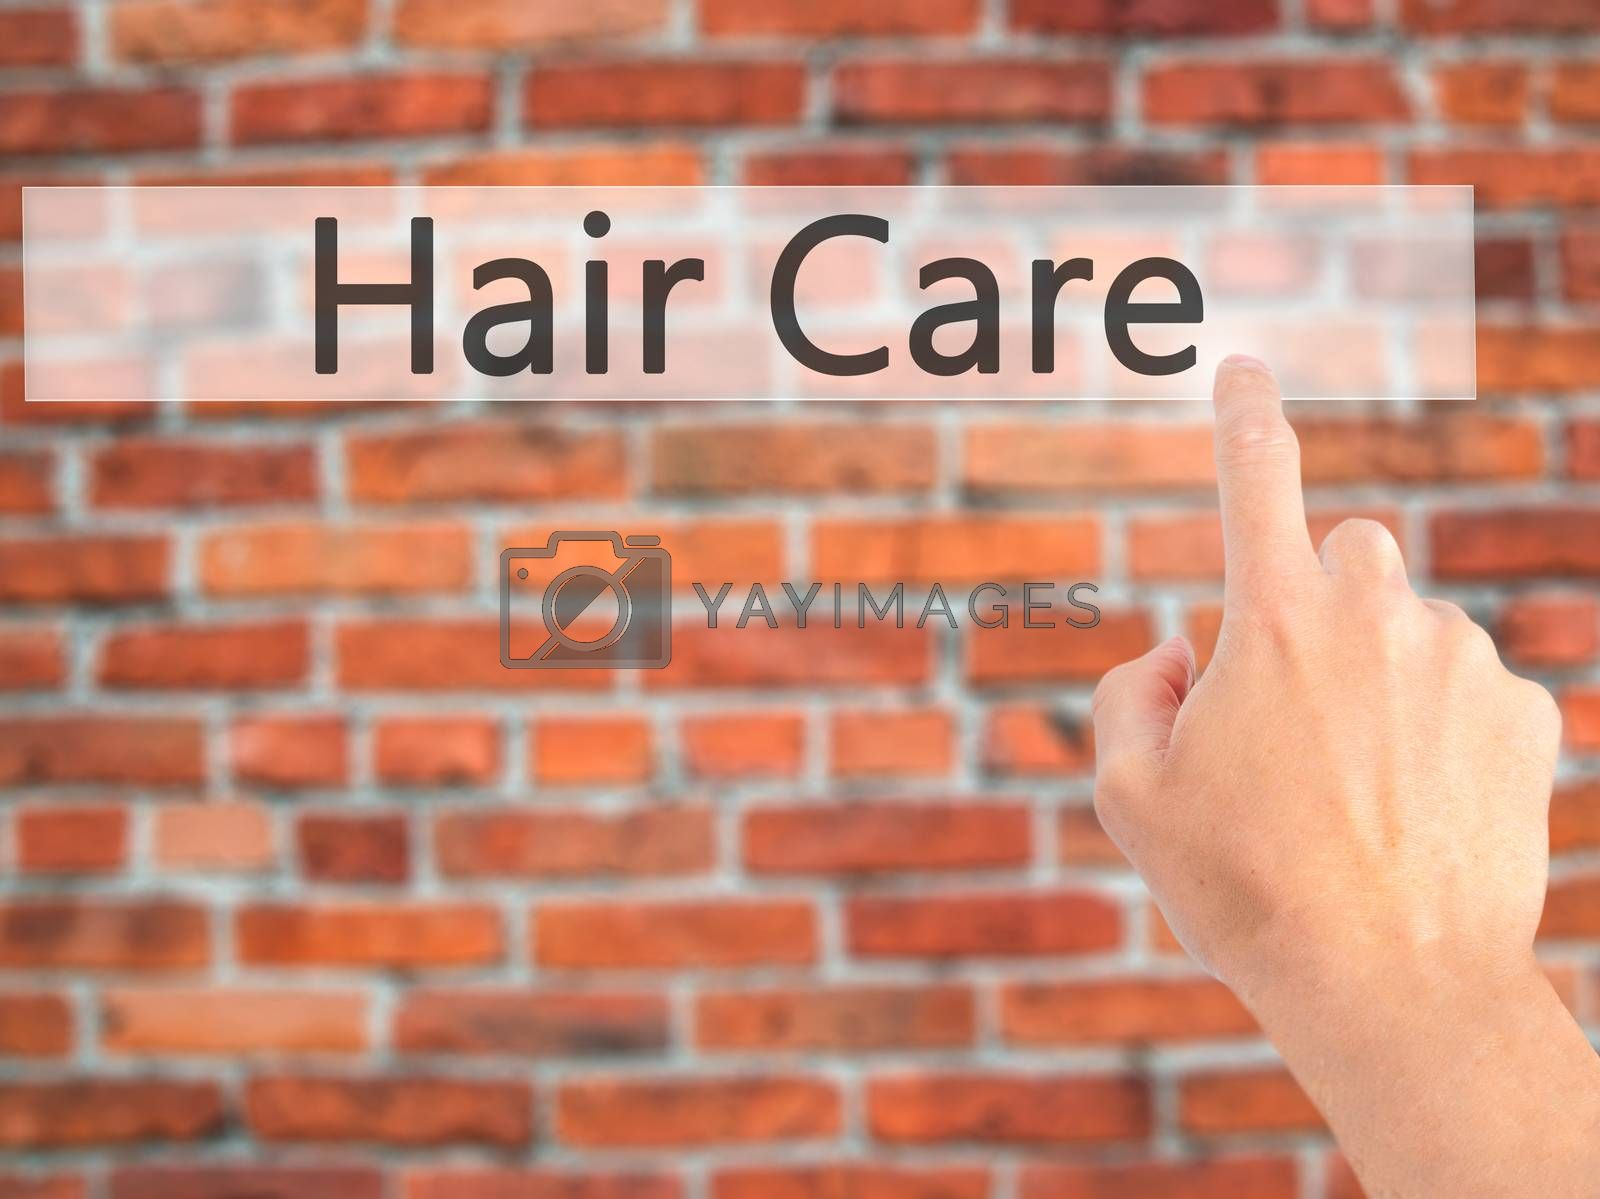 Hair Care - Hand pressing a button on blurred background concept by jackald